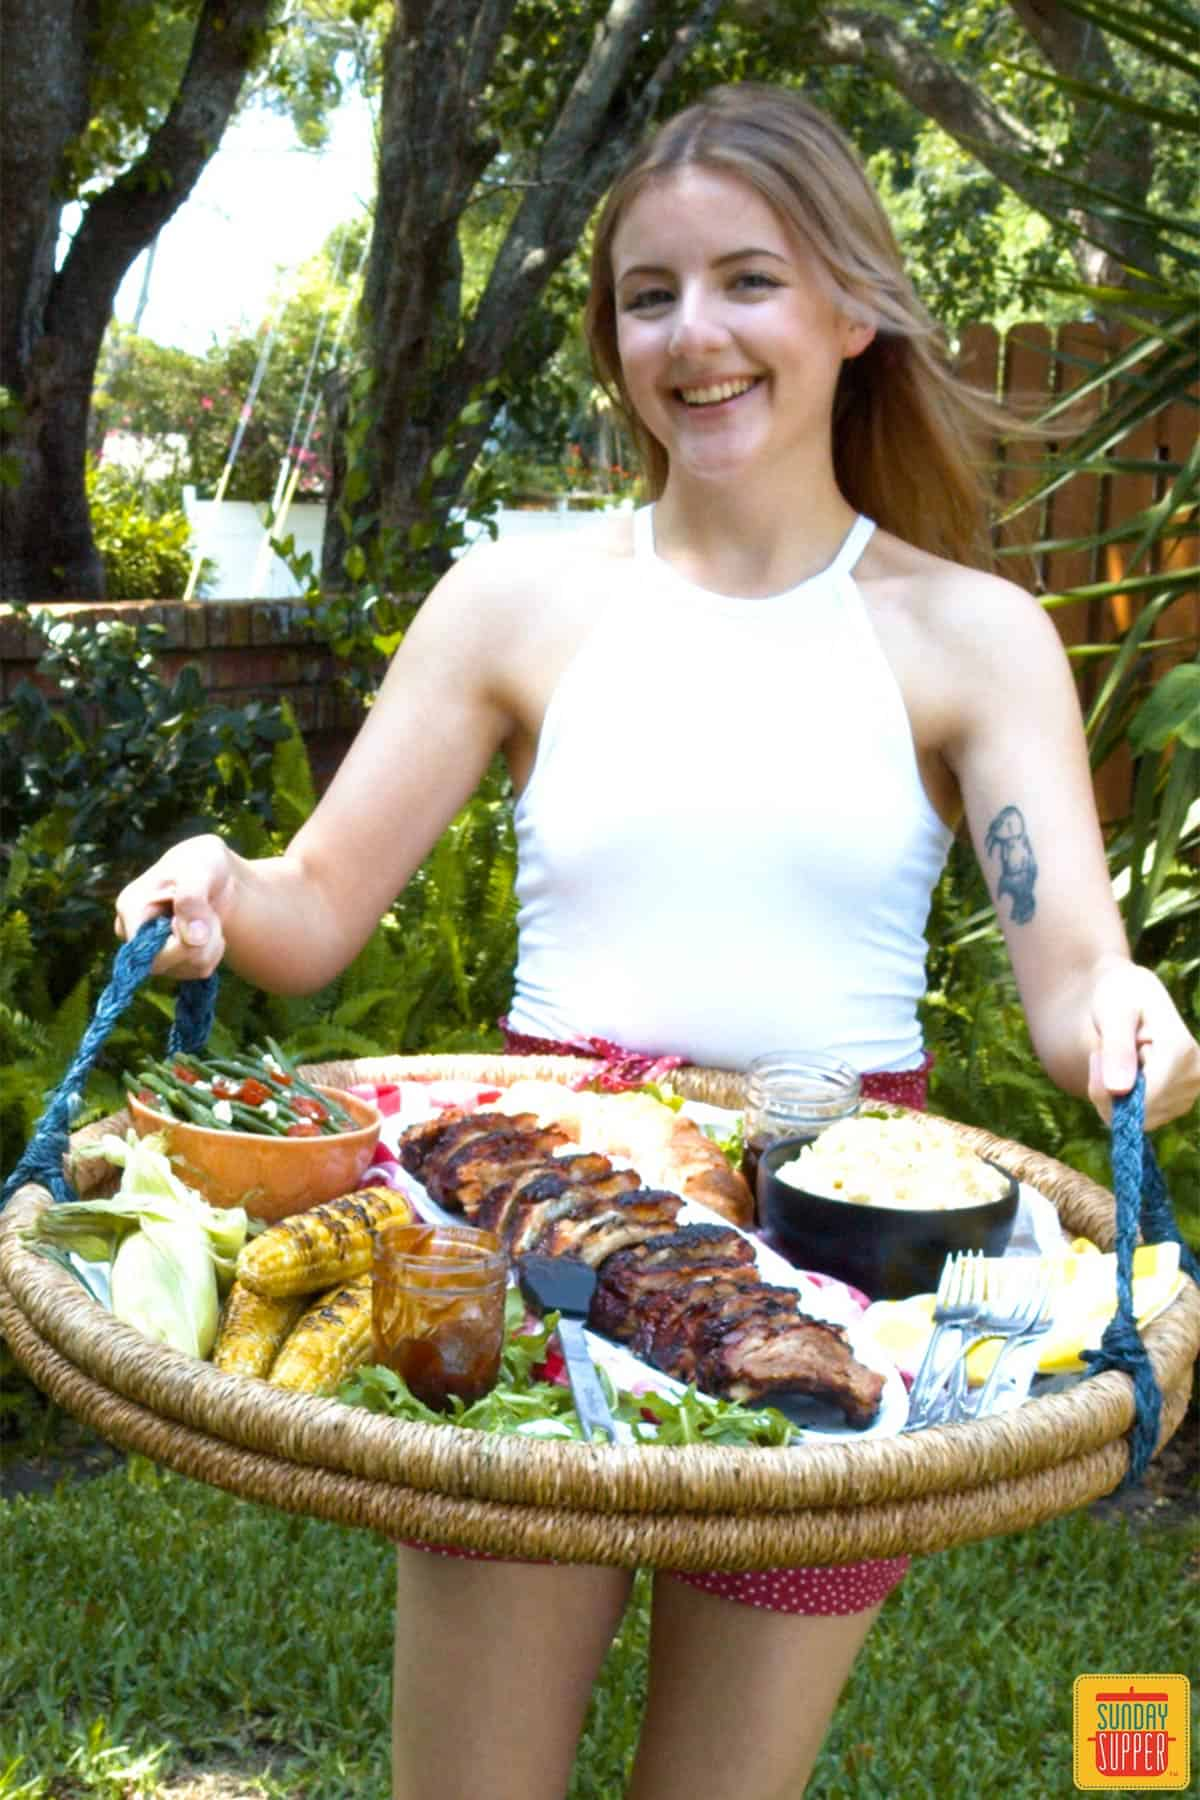 Smiling woman holding tray of baby back ribs and side dishes outside